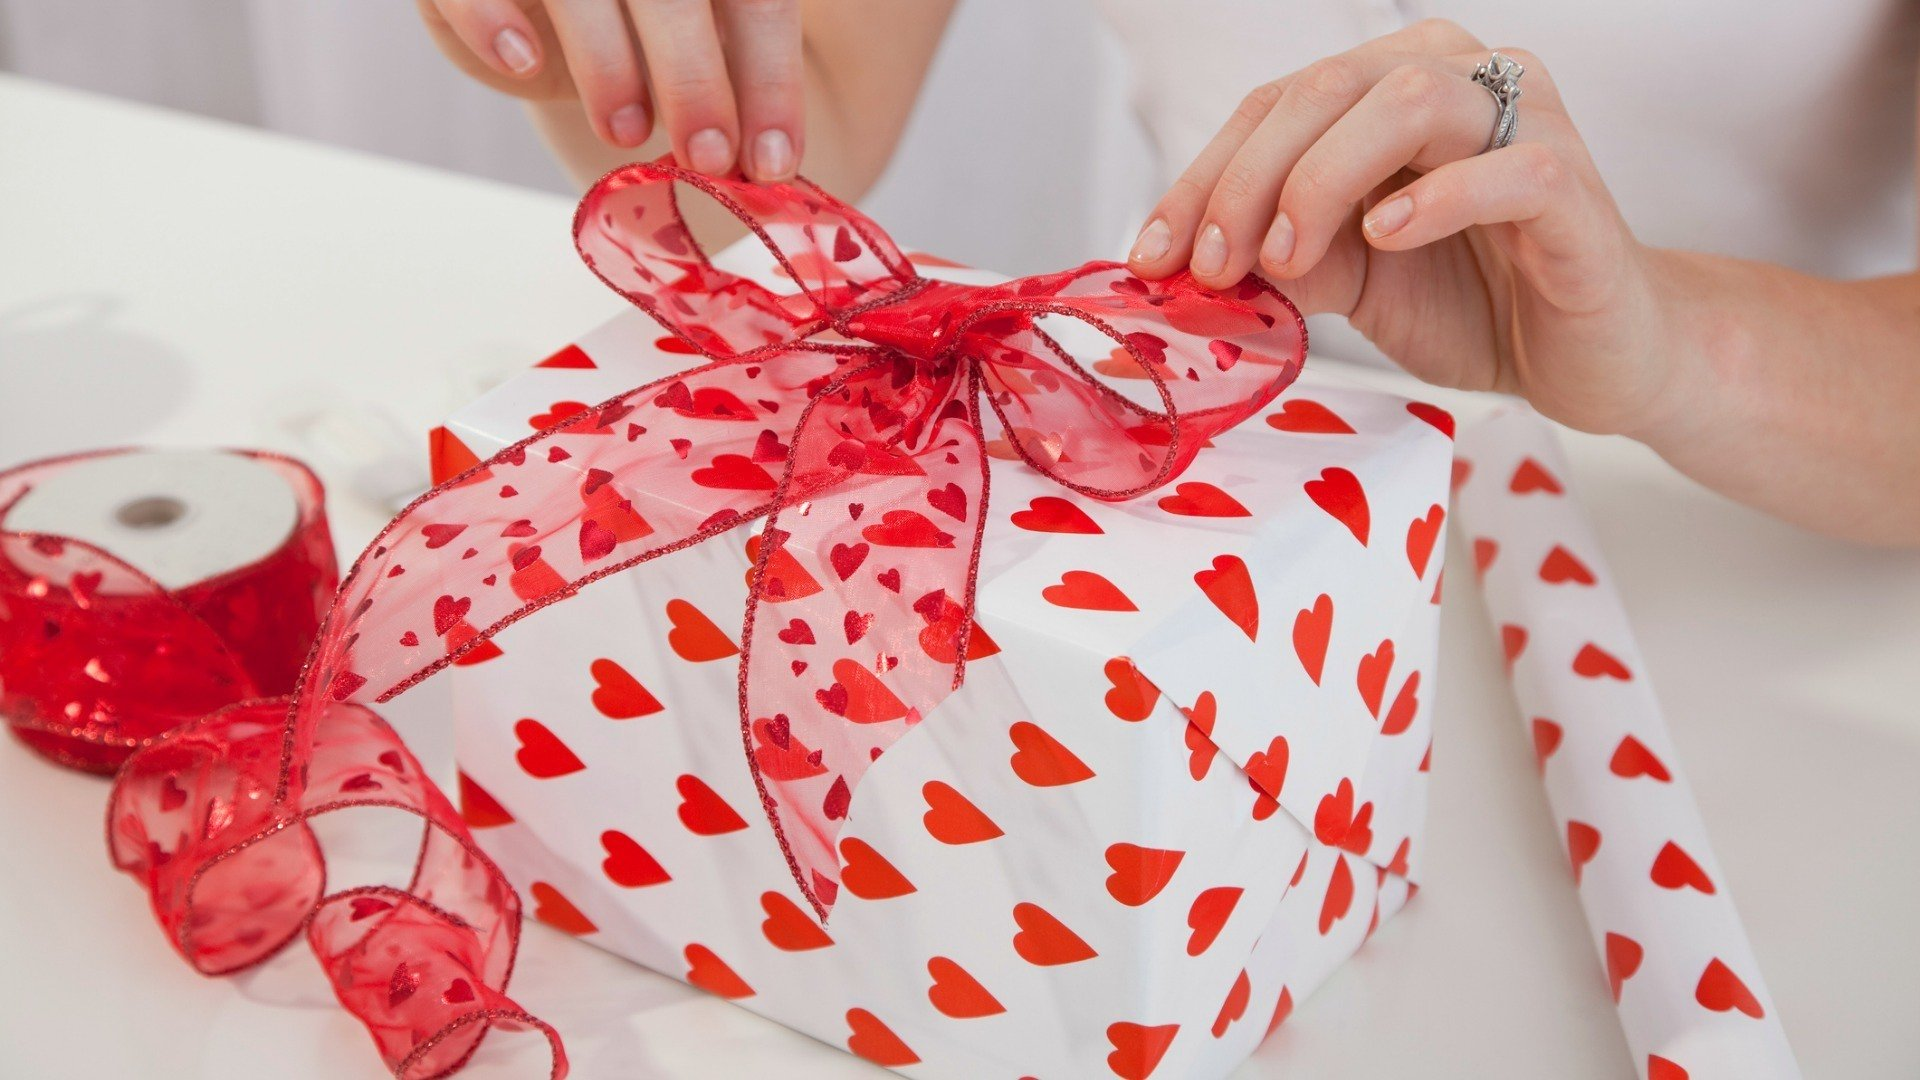 10 Unique Valentine Day Gifts For Him Ideas creative gifts ideas for the groom to be venuelook blog 8 2020